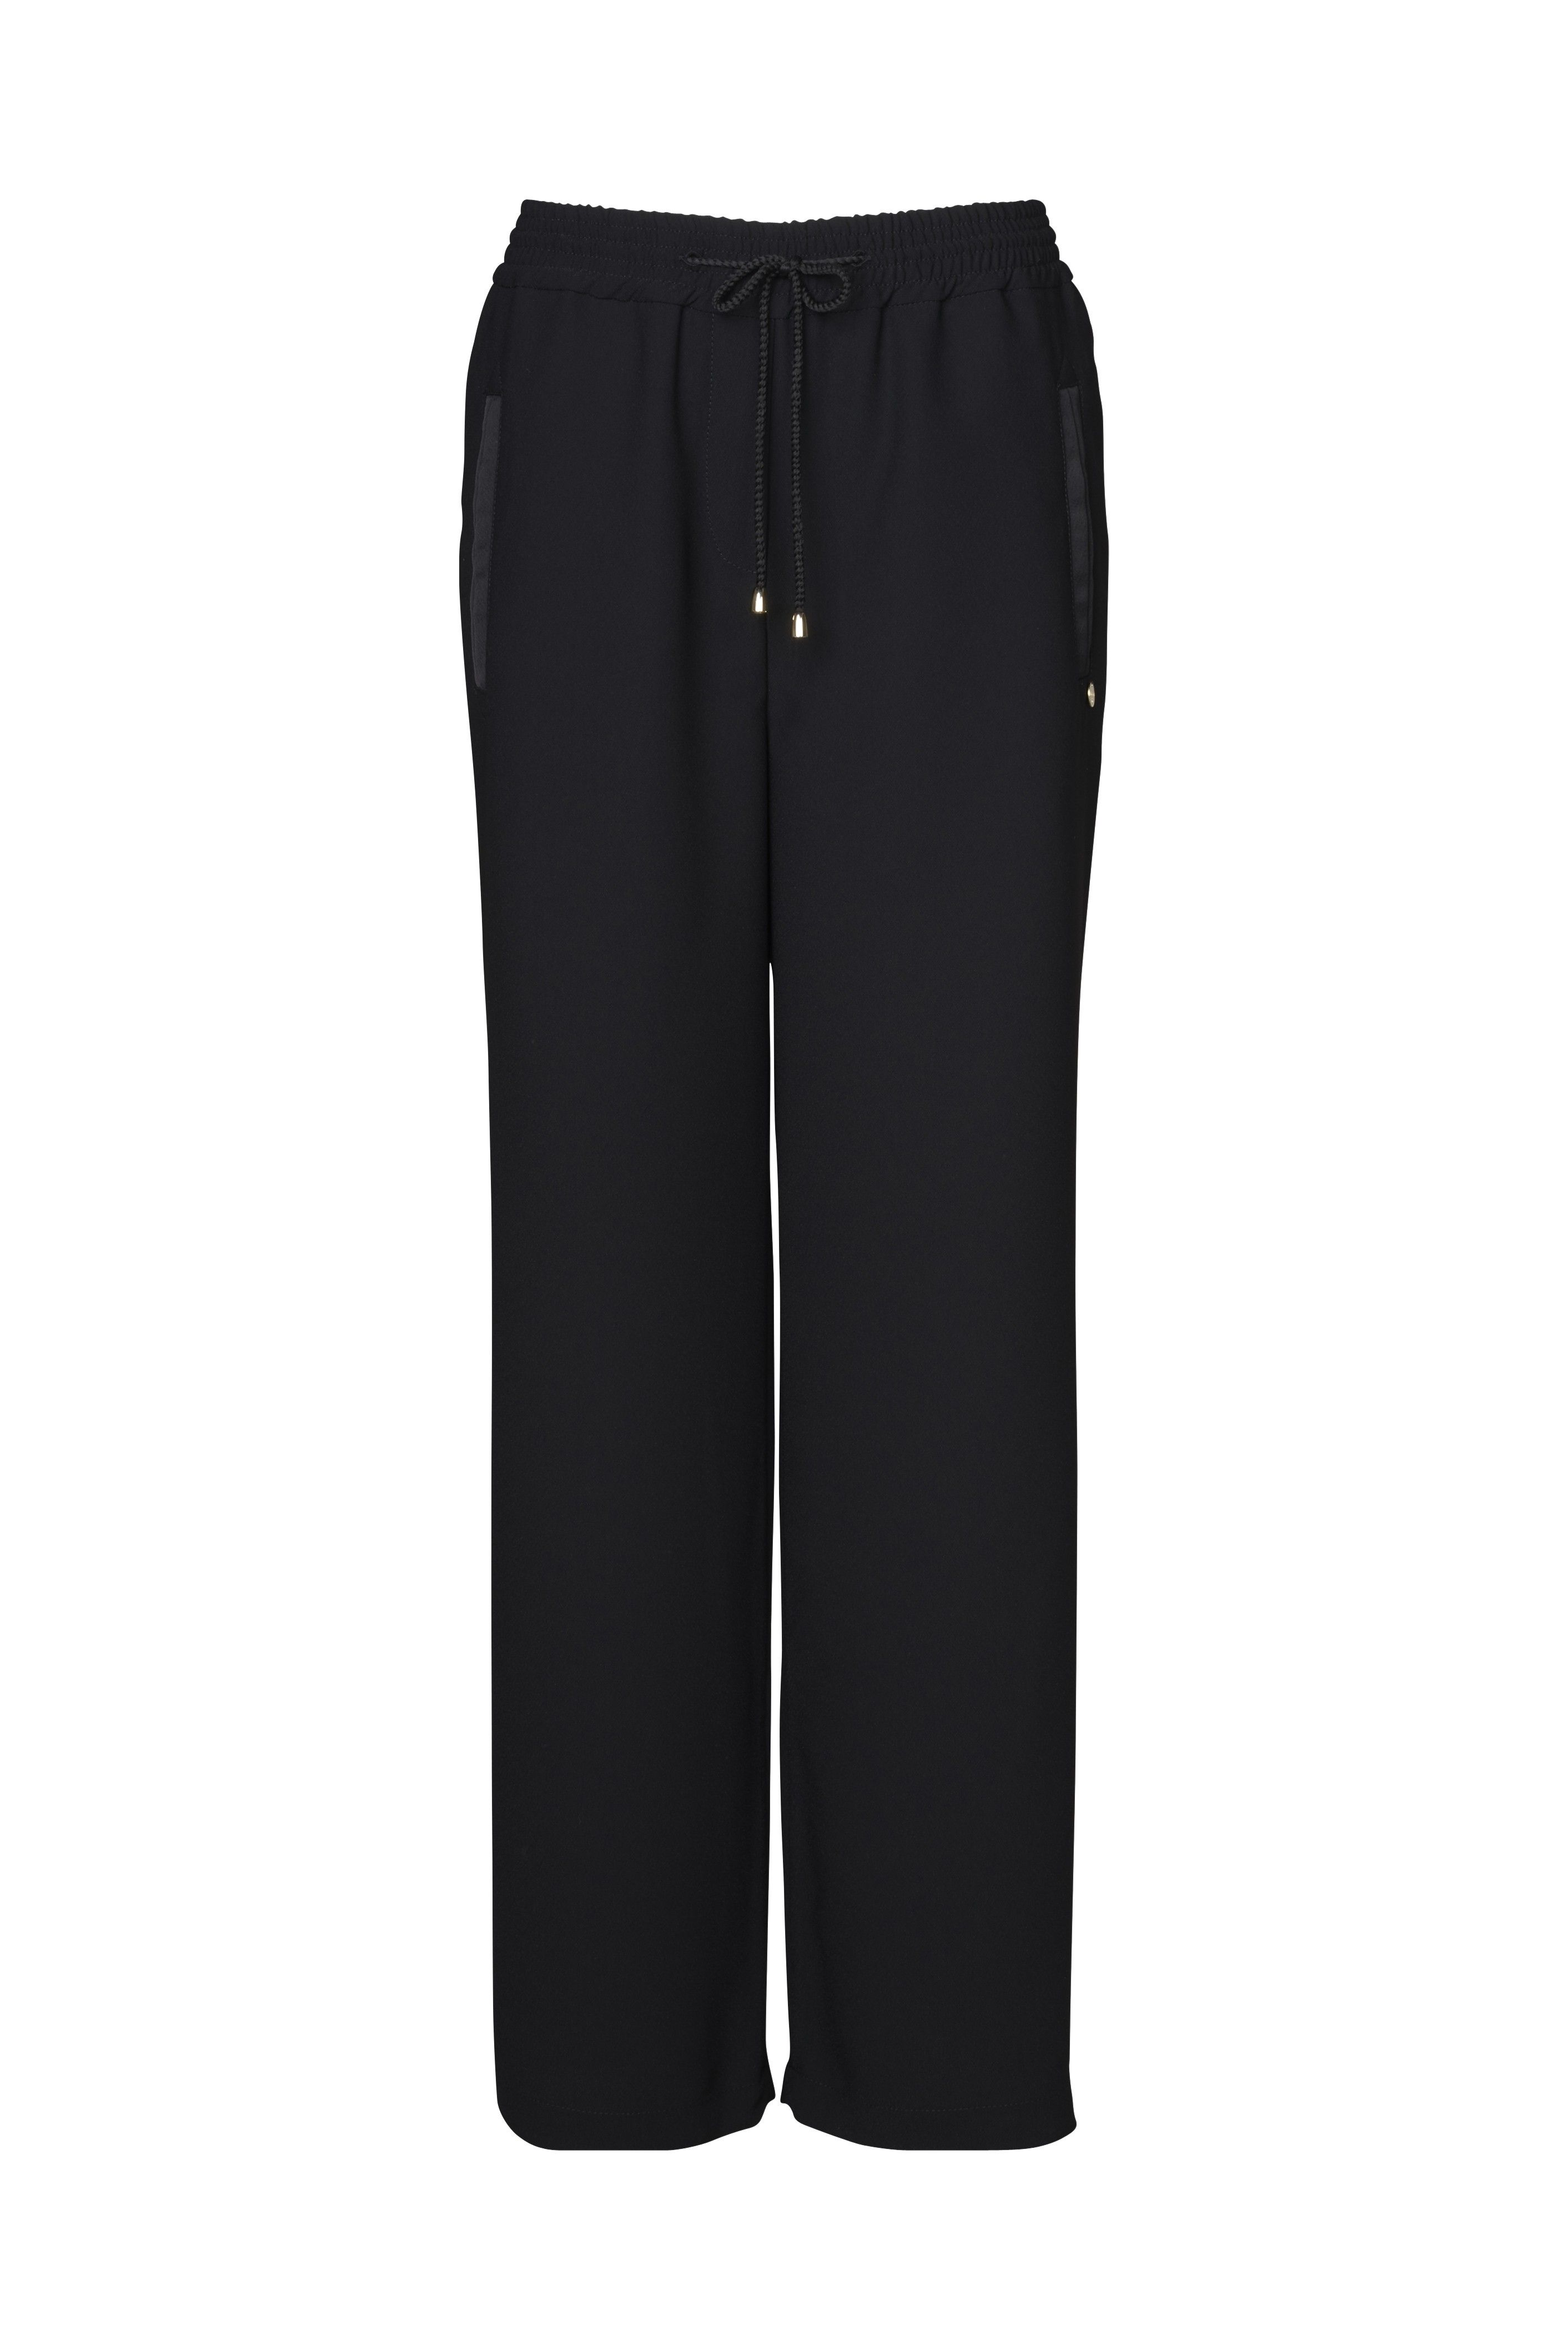 RICH & ROYAL - Hose - Wide Leg Pants - Black